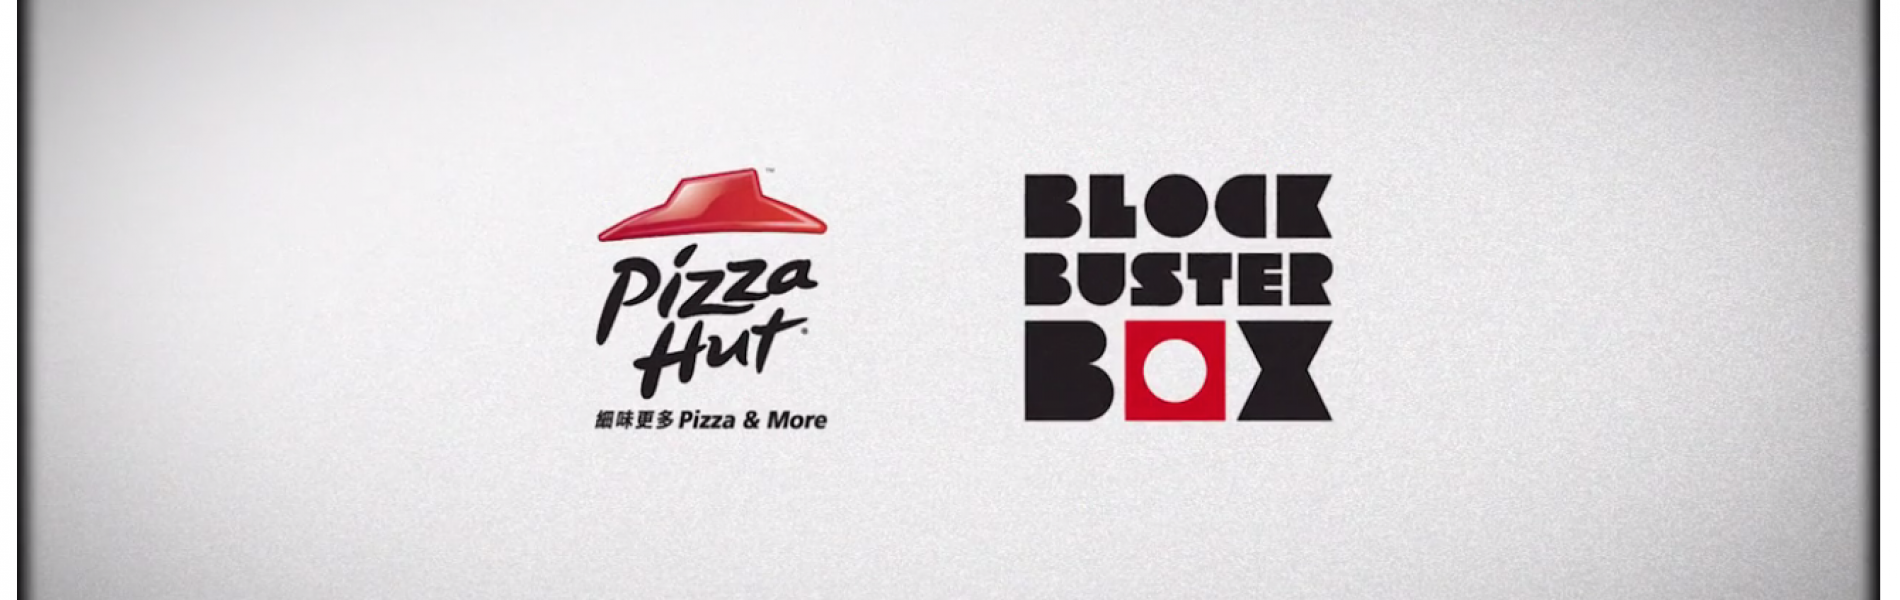 "Ogilvy & Mather/Pizza Hut ""Fake"" Marketing Appears Again…"